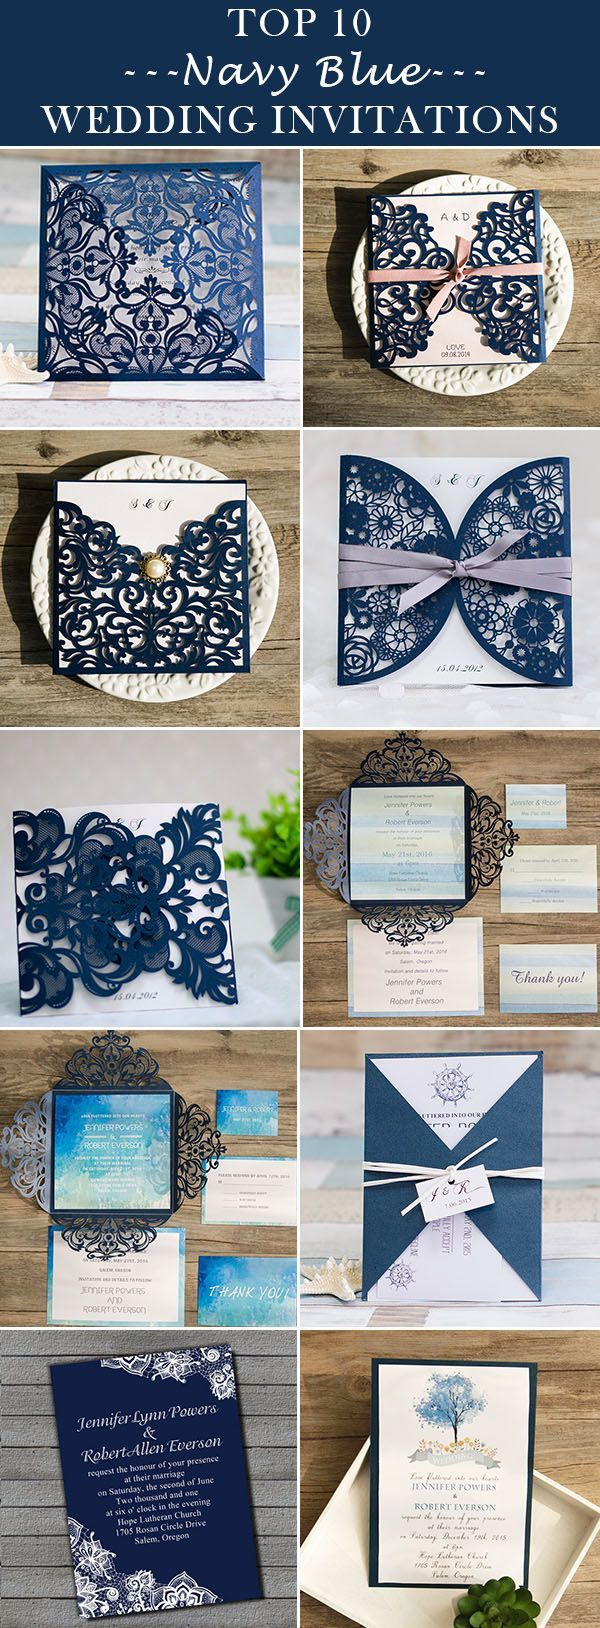 Classic navy blue wedding invitations check them